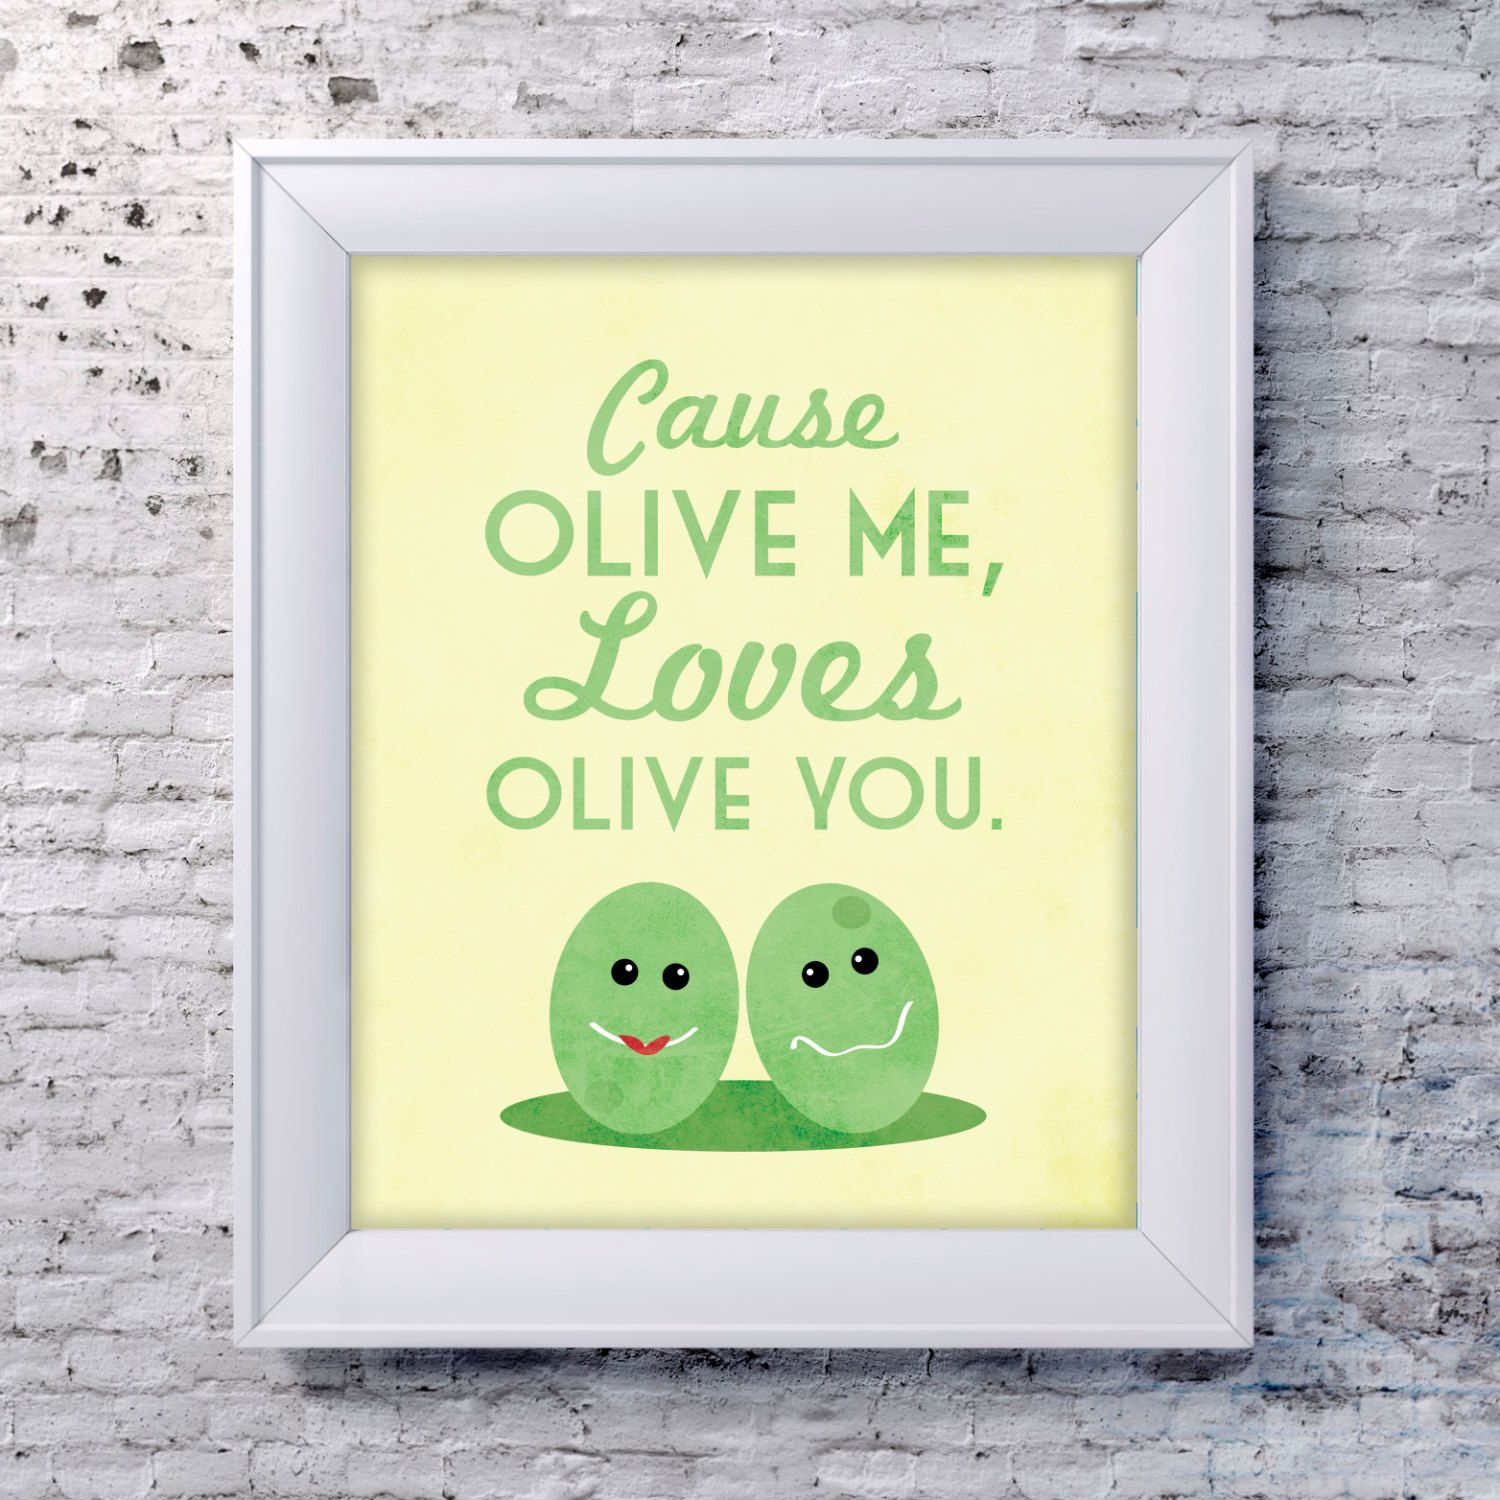 Funny Kitchen Art Print Olive Quote Poster by SmartyPantsStudio